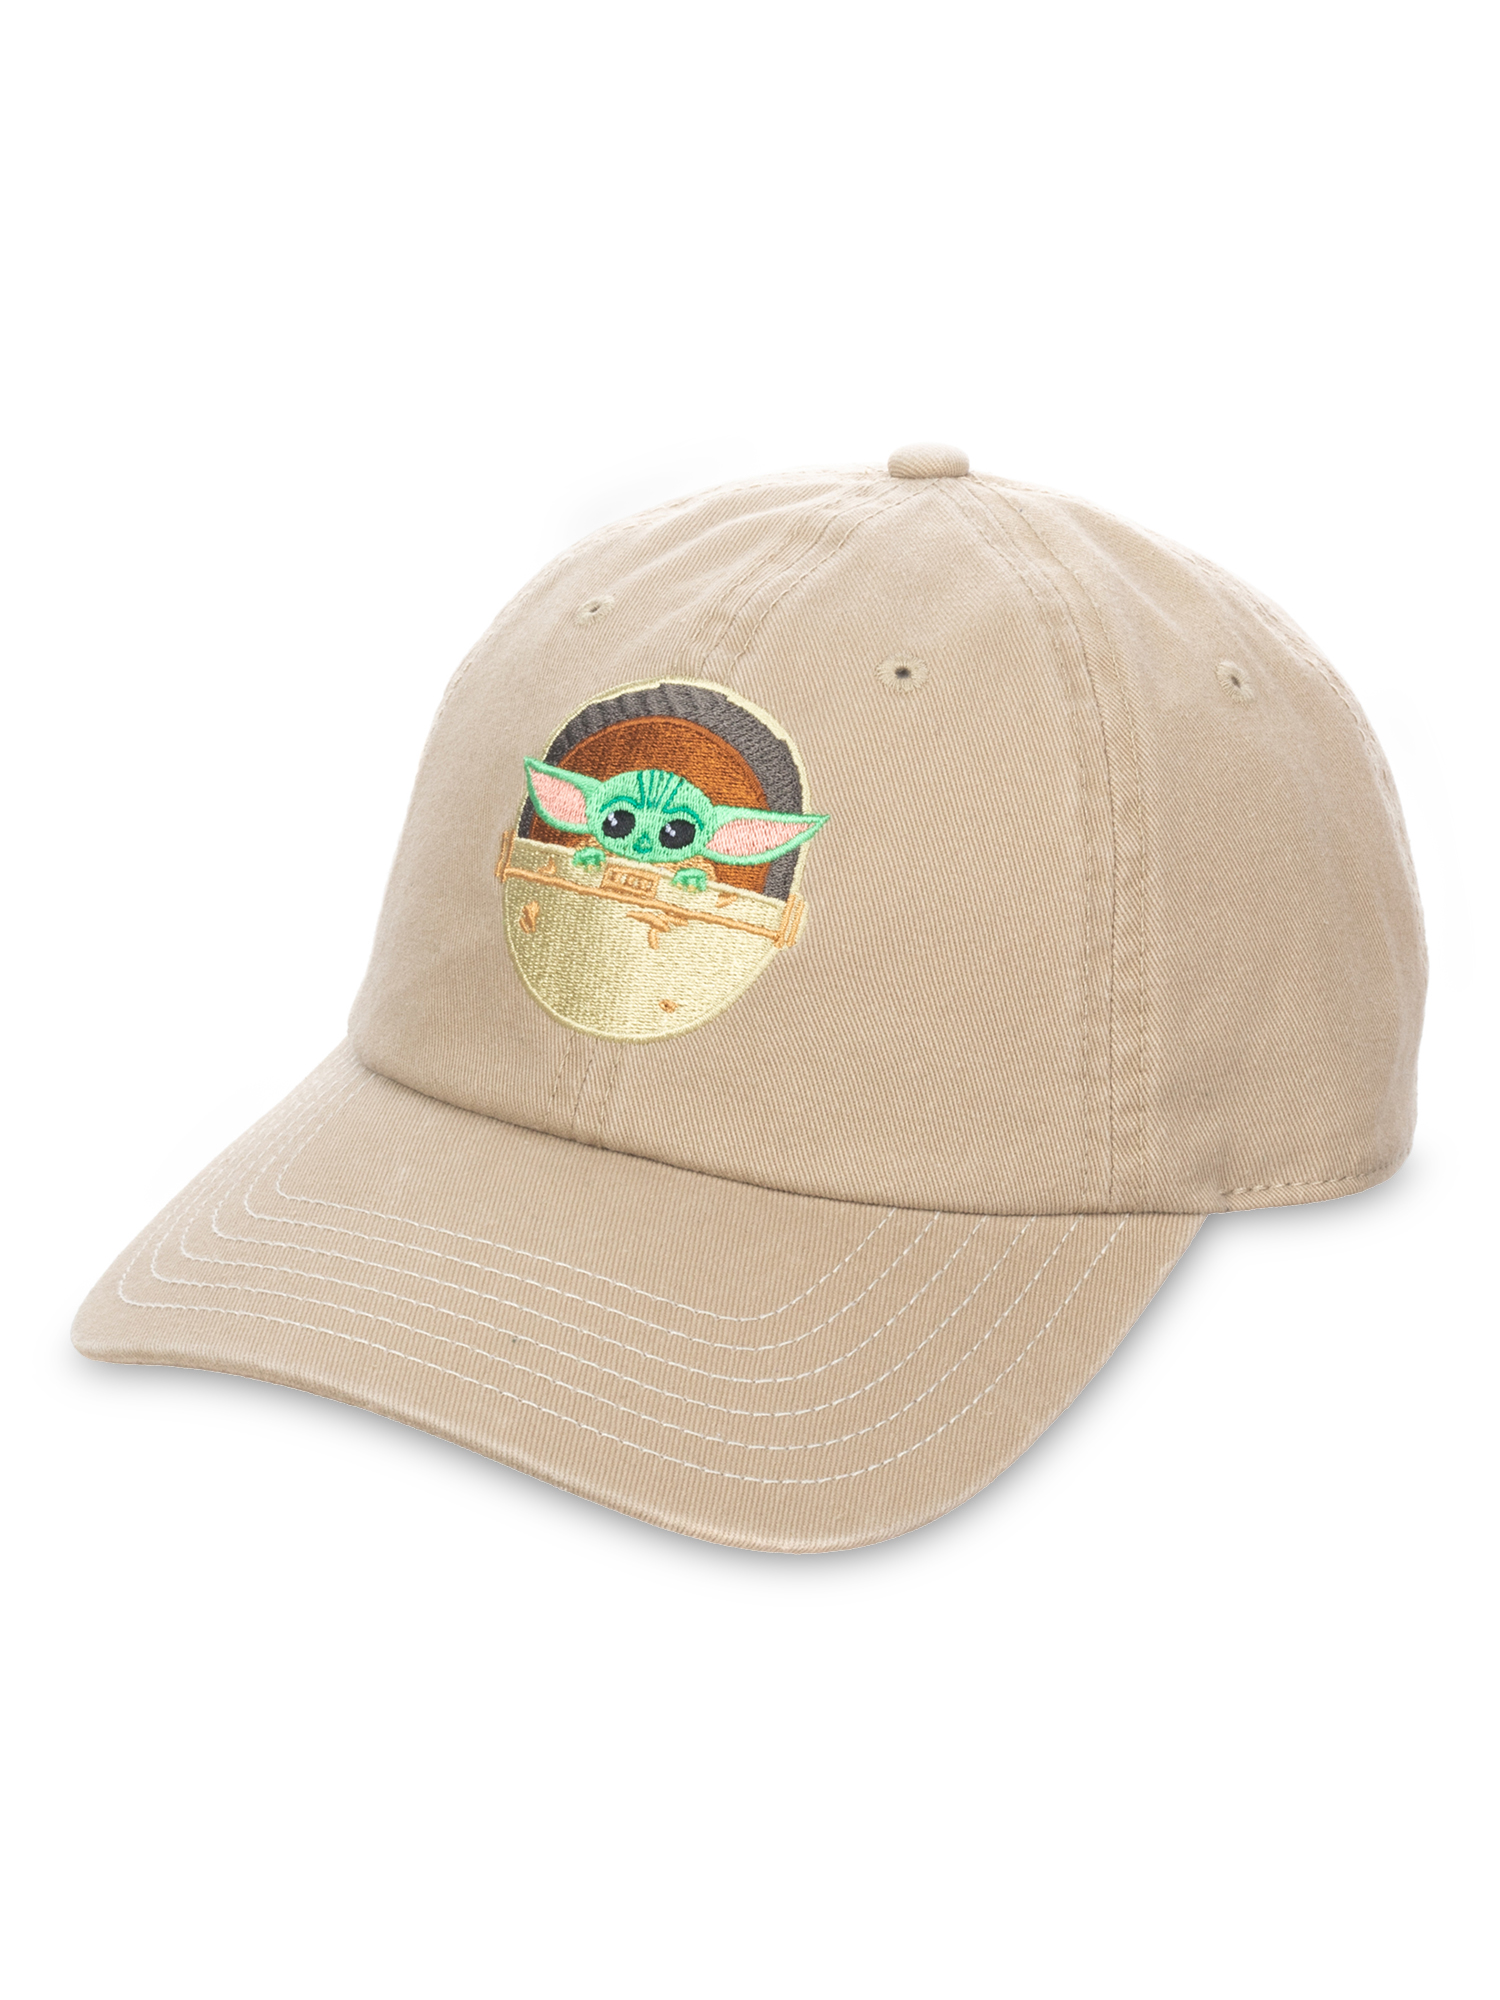 TM The Child Khaki Hat 2